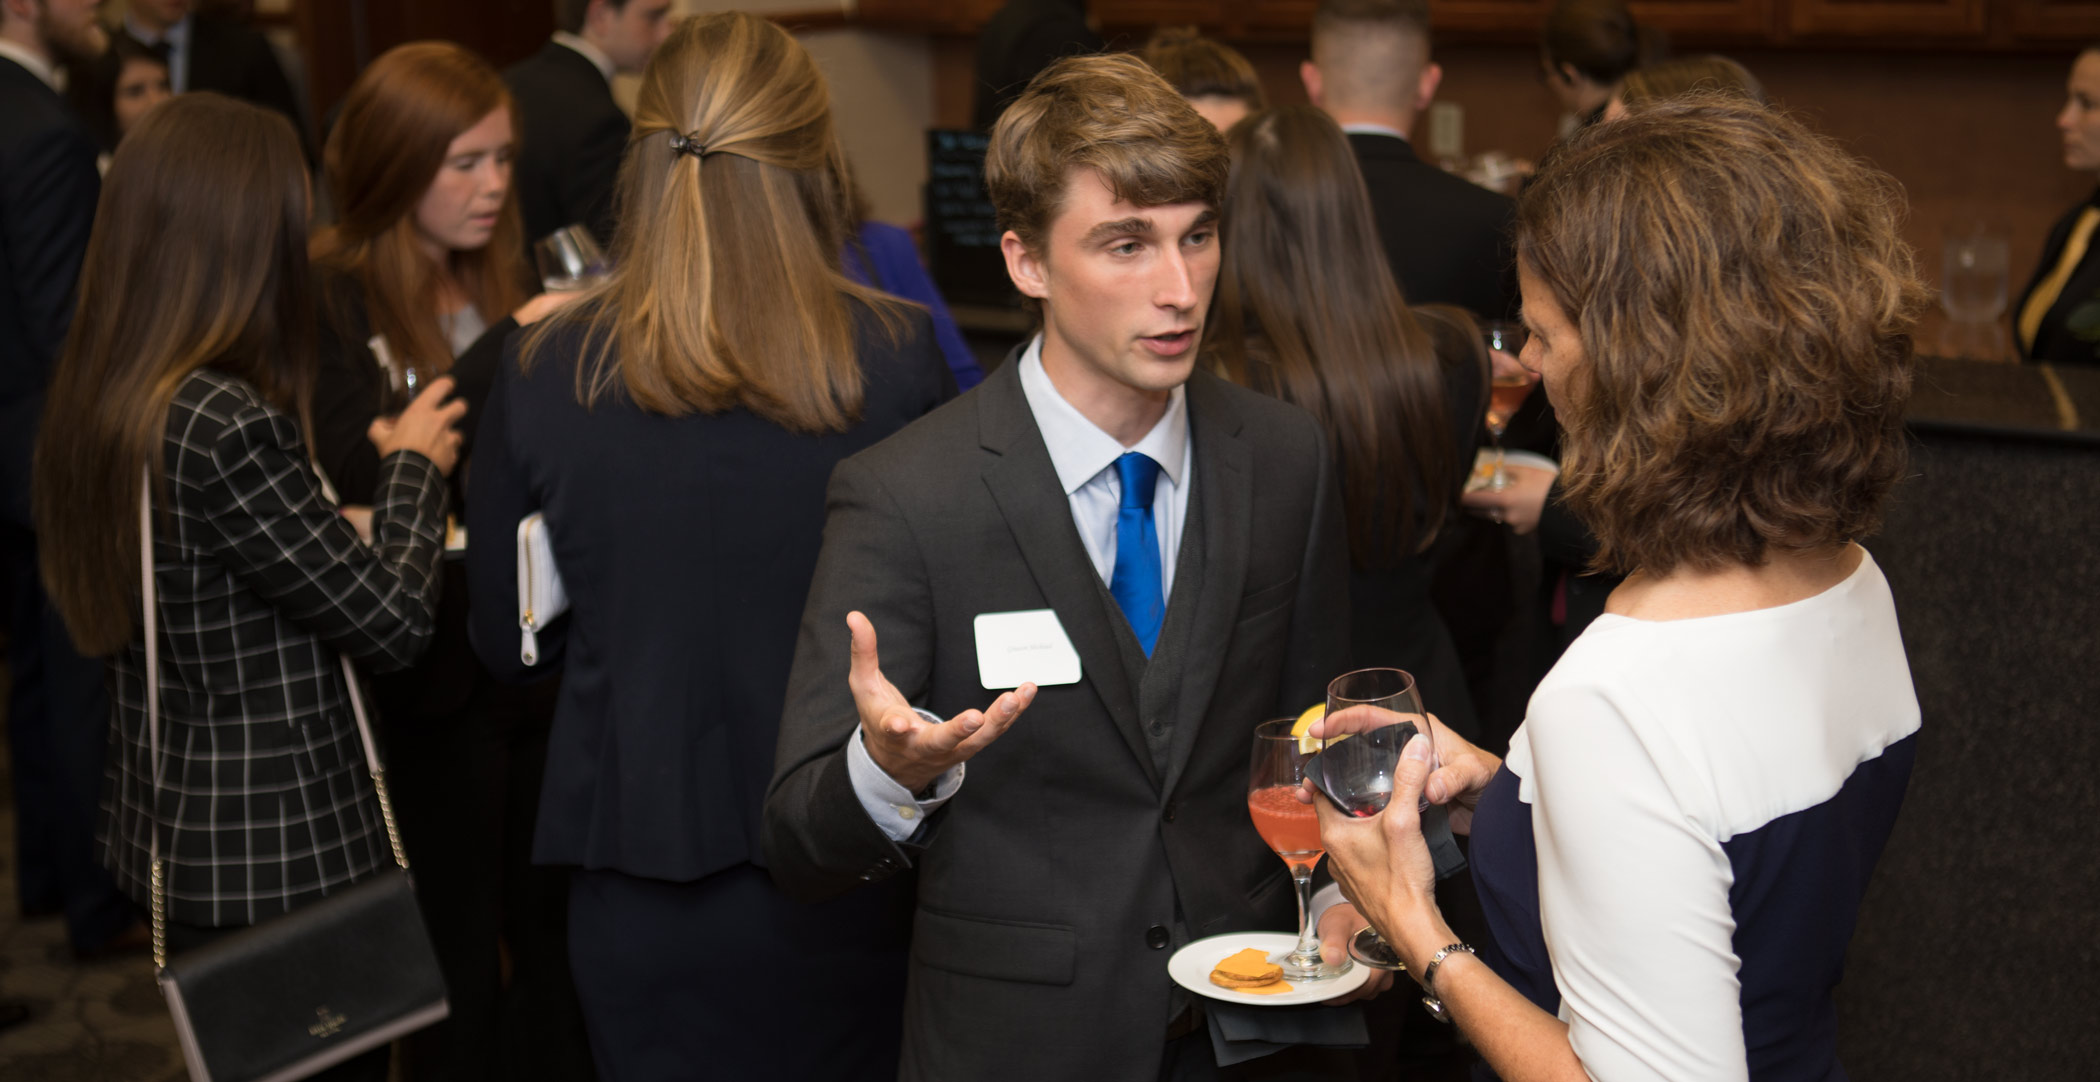 Patty Navin speaks with Graeson Michaud. Ohio Northern University Dicke College of Business Administration juniors participated in an etiquette dinner at The Inn at Ohio Northern University.